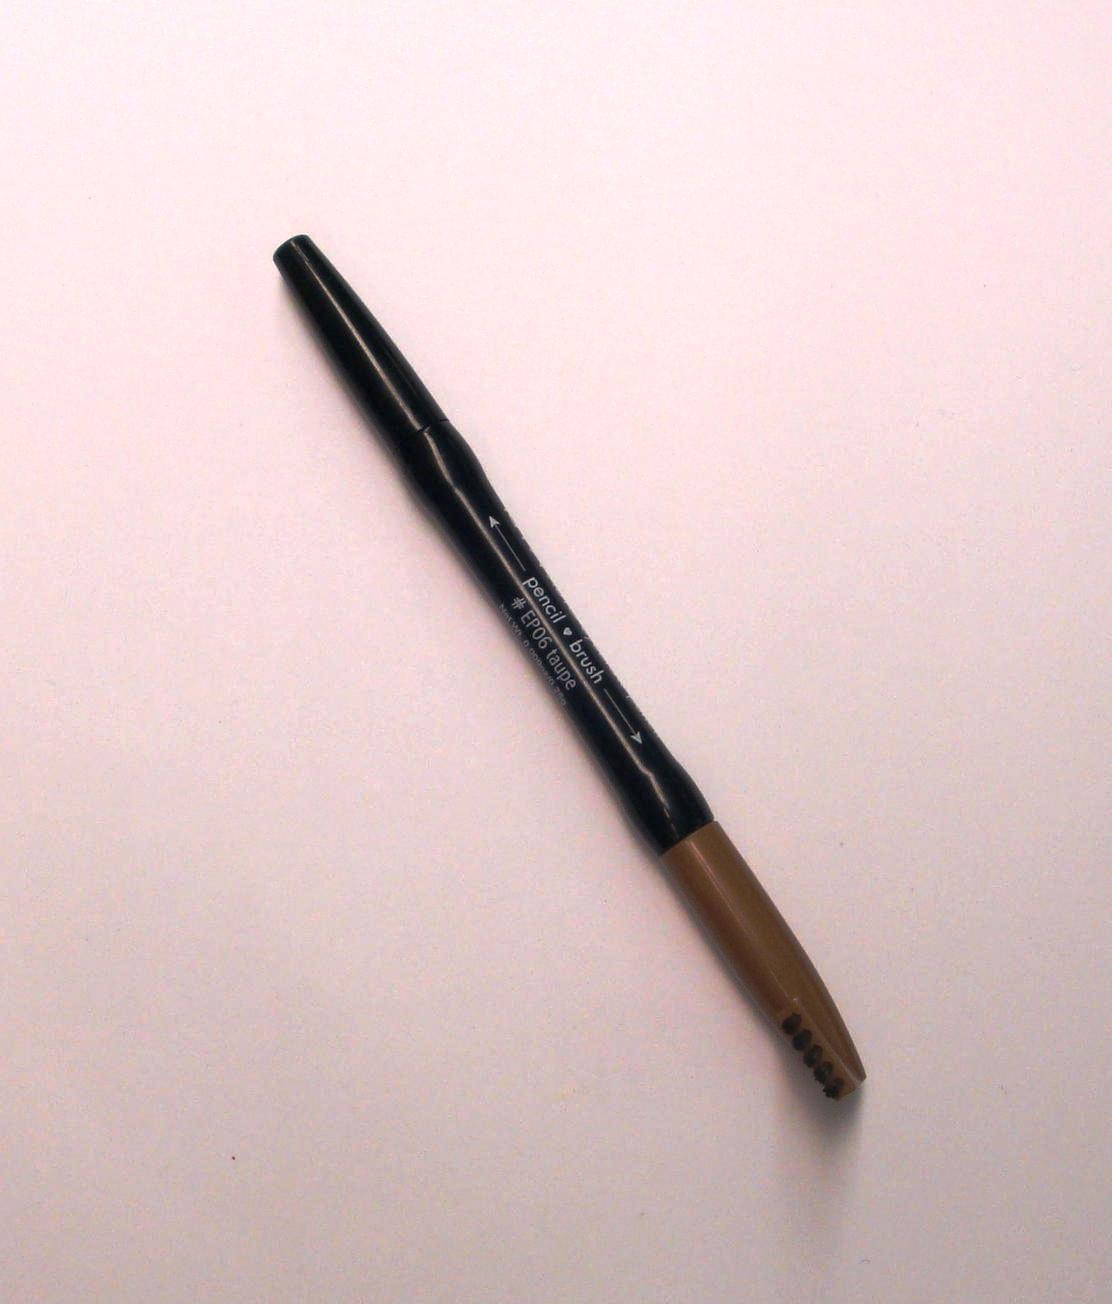 NYX Professional Makeup Auto Eyebrow Pencil-Comes with a brow brush-By riya_neema